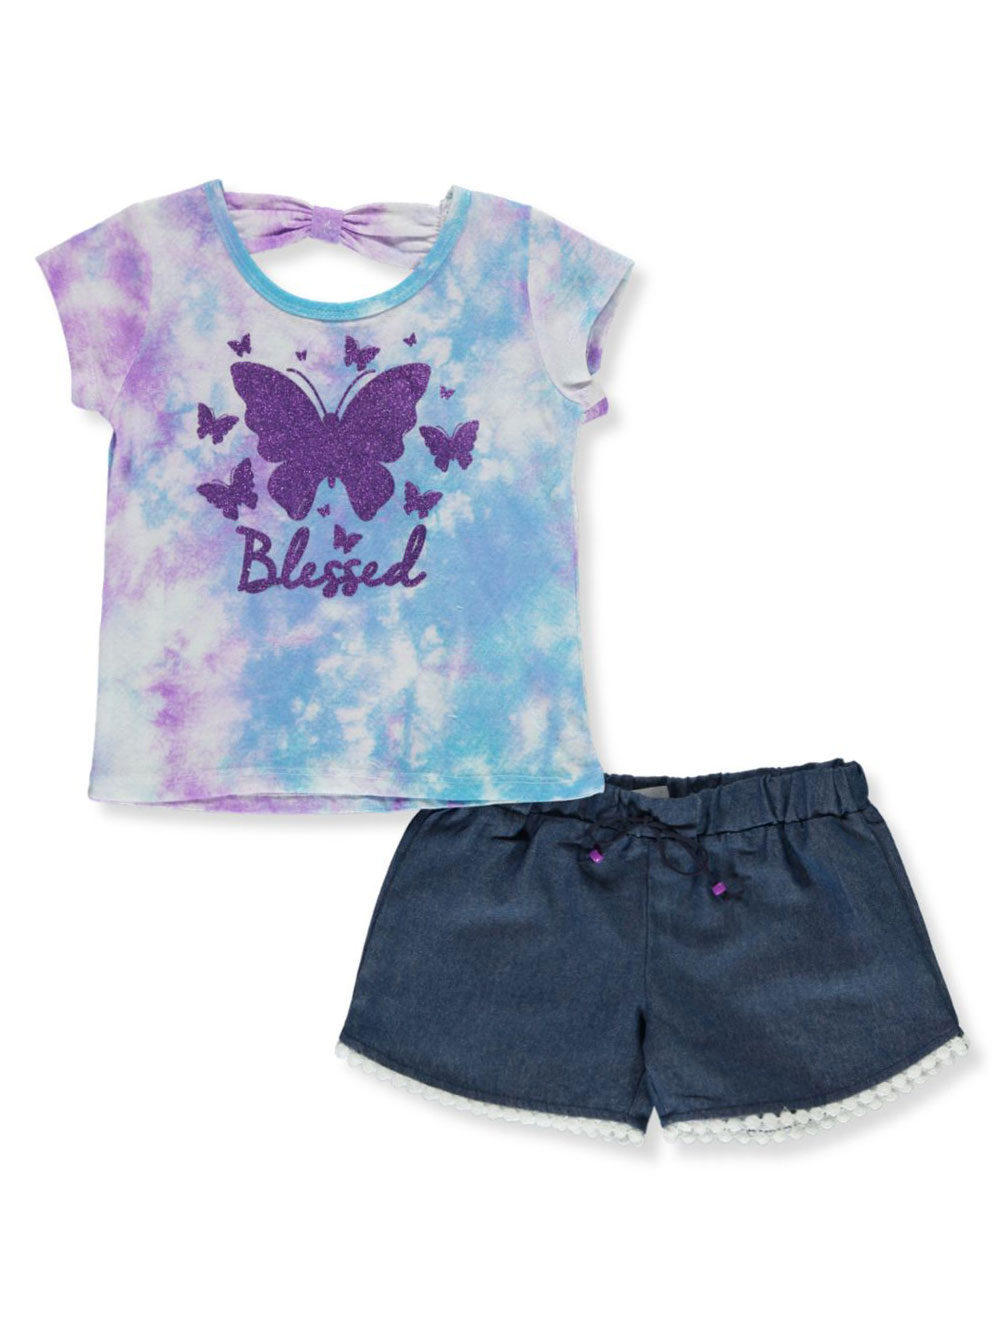 Blessed Butterfly 2-Piece Shorts Set Outfit